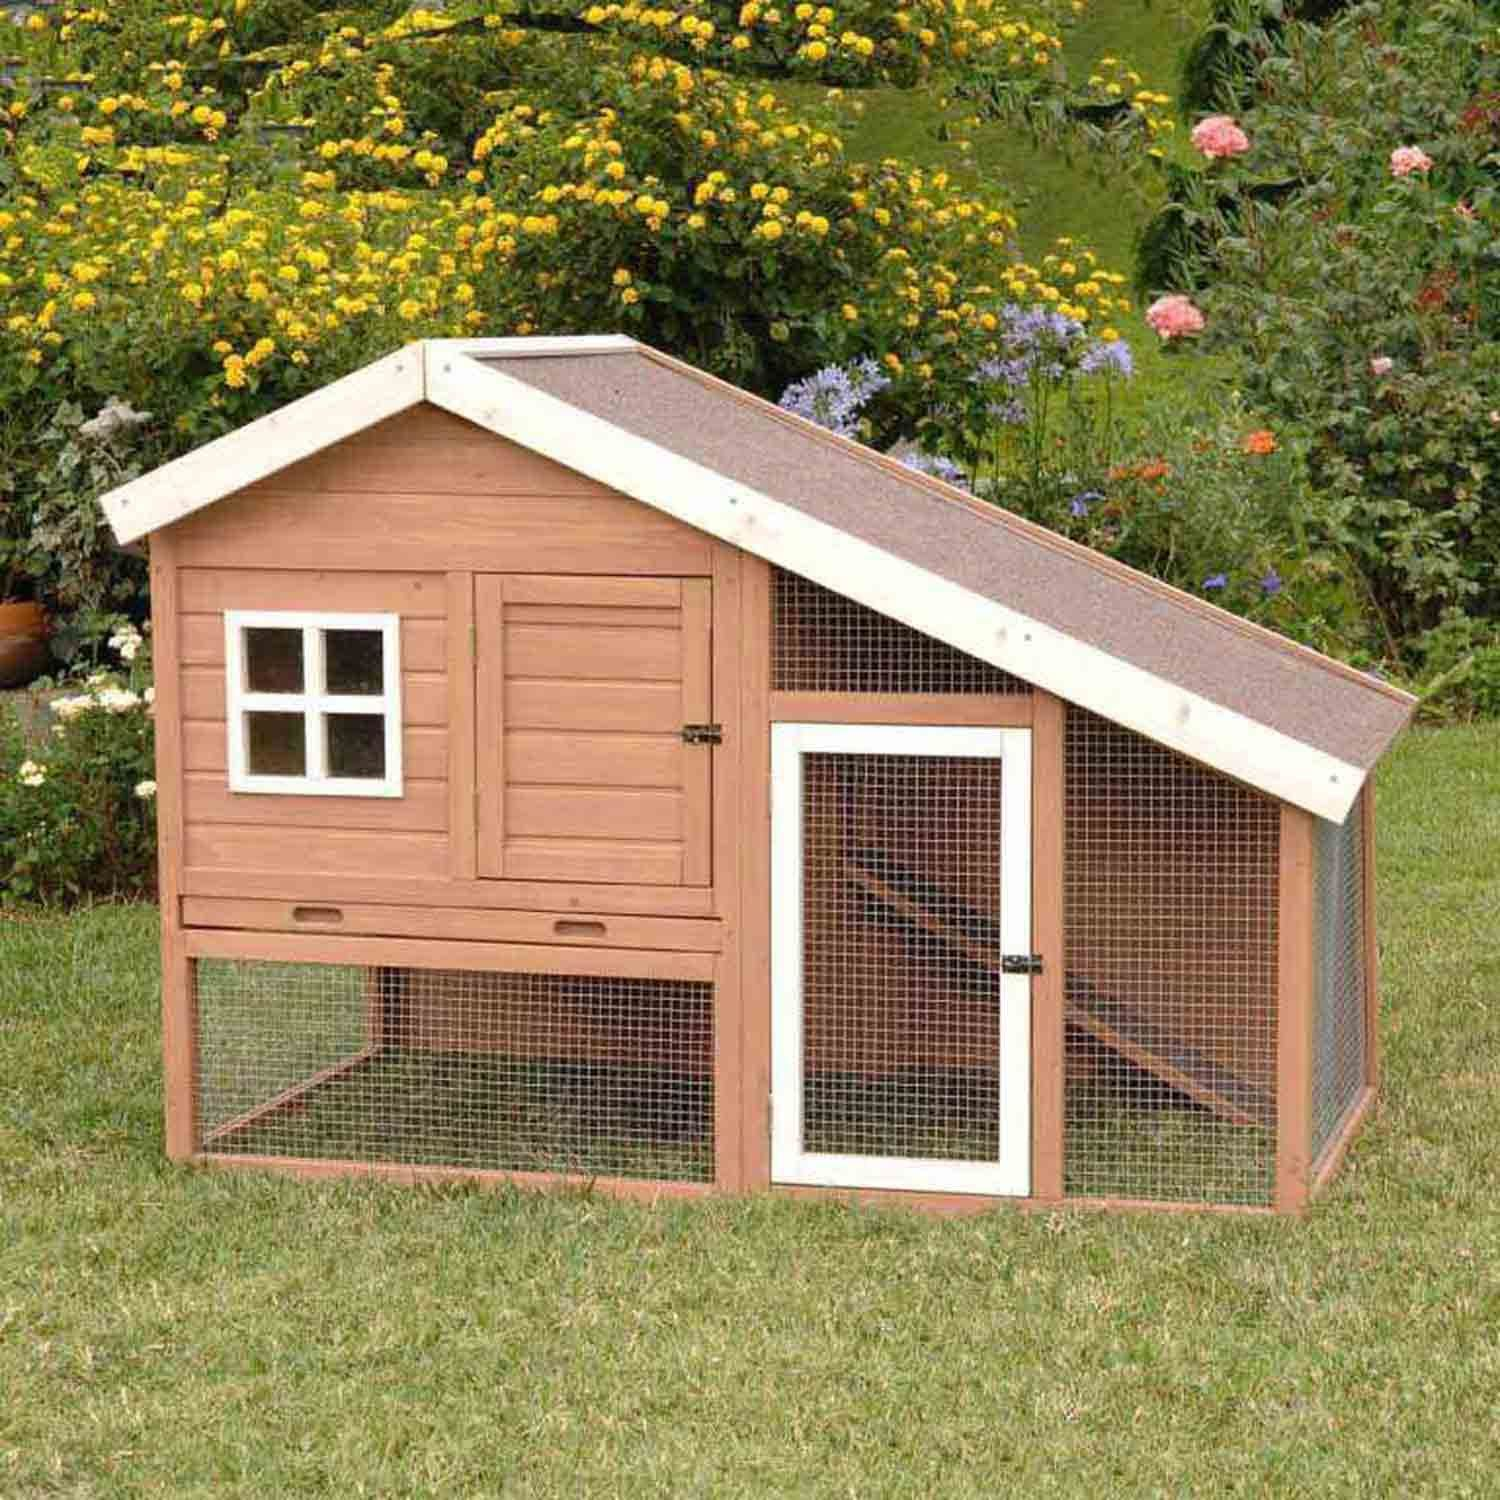 Below We Ve Got Forty Four Free Diy Coop Plans With Easy Step By Step Instructions We Ll Addit Chickens Backyard Diy Chicken Coop Plans Backyard Chicken Coops